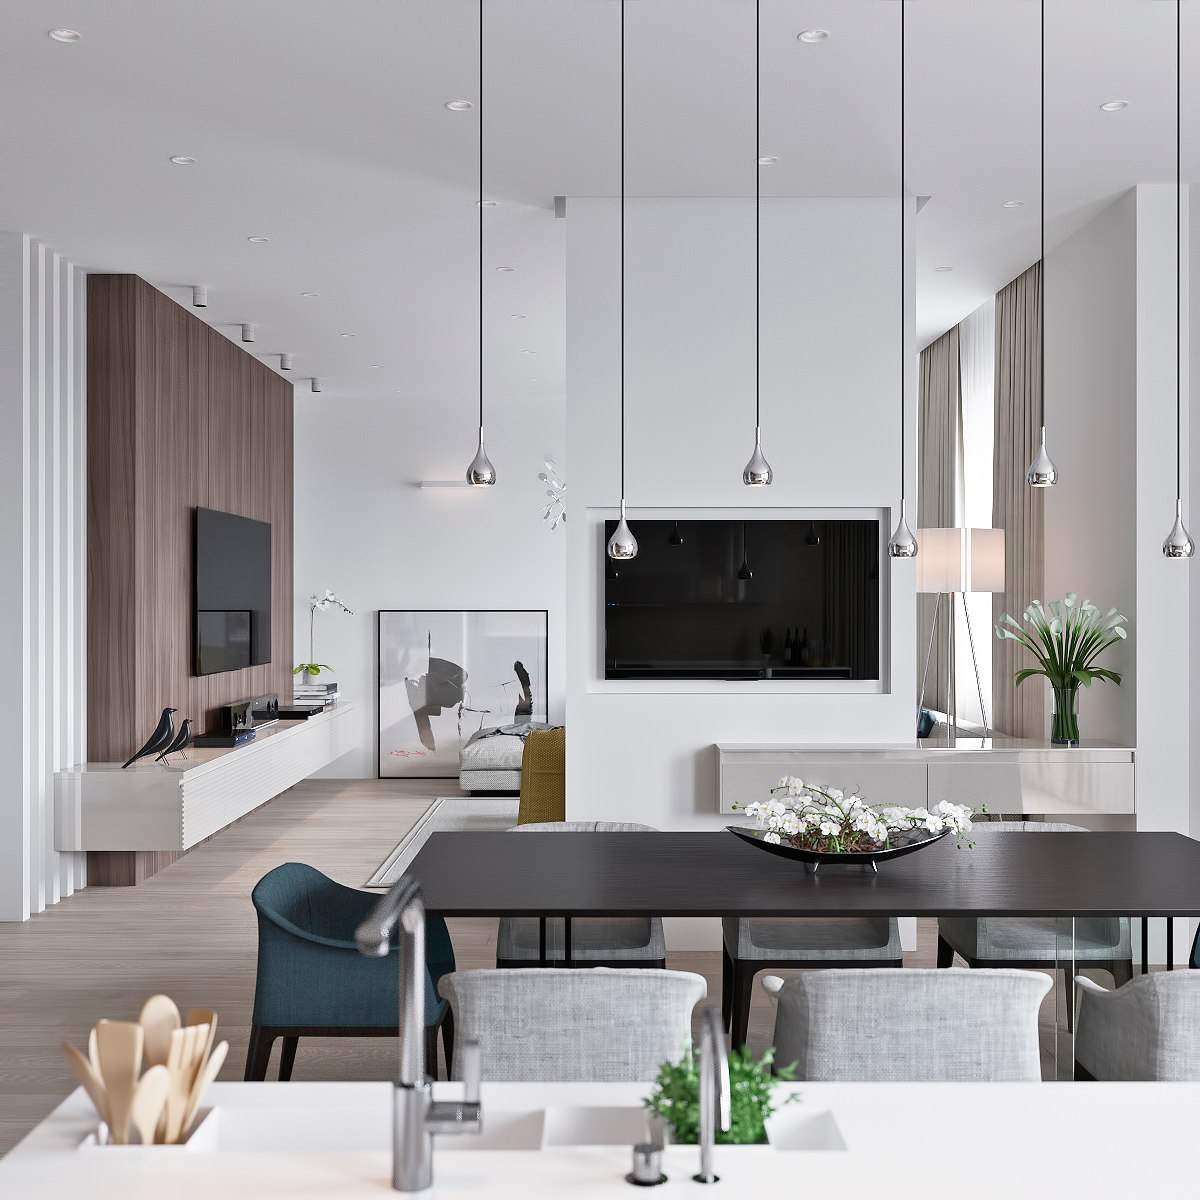 Apartment Layout: 3 Light Interiors With Creative Pops Of Color